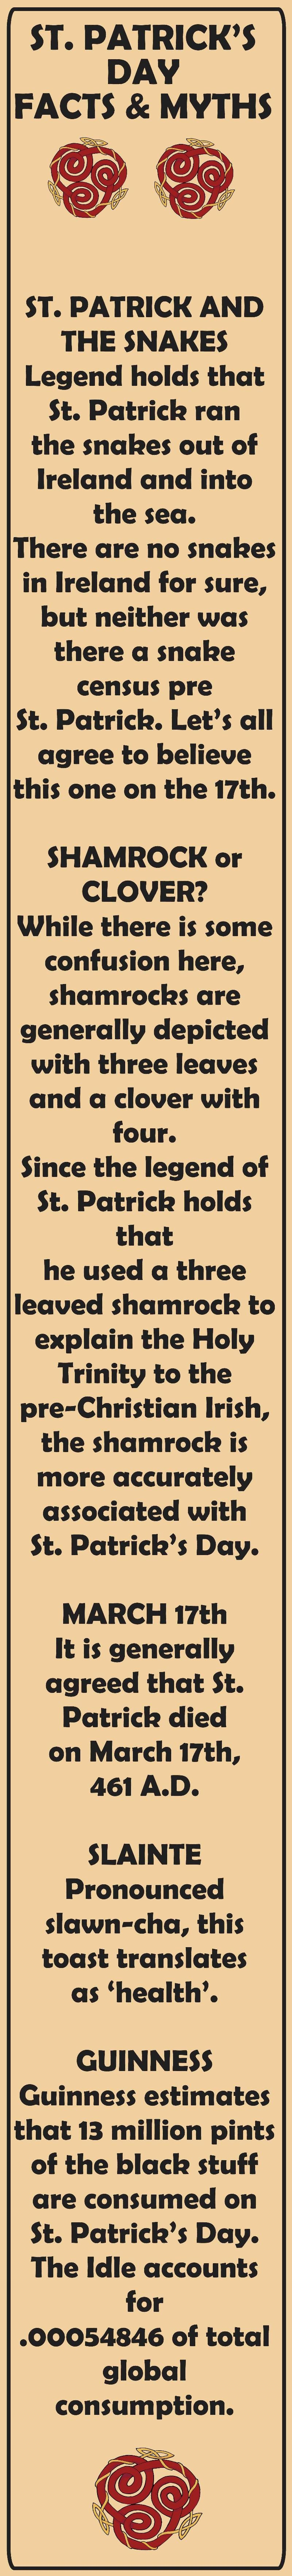 ST_PATS_MYTHS